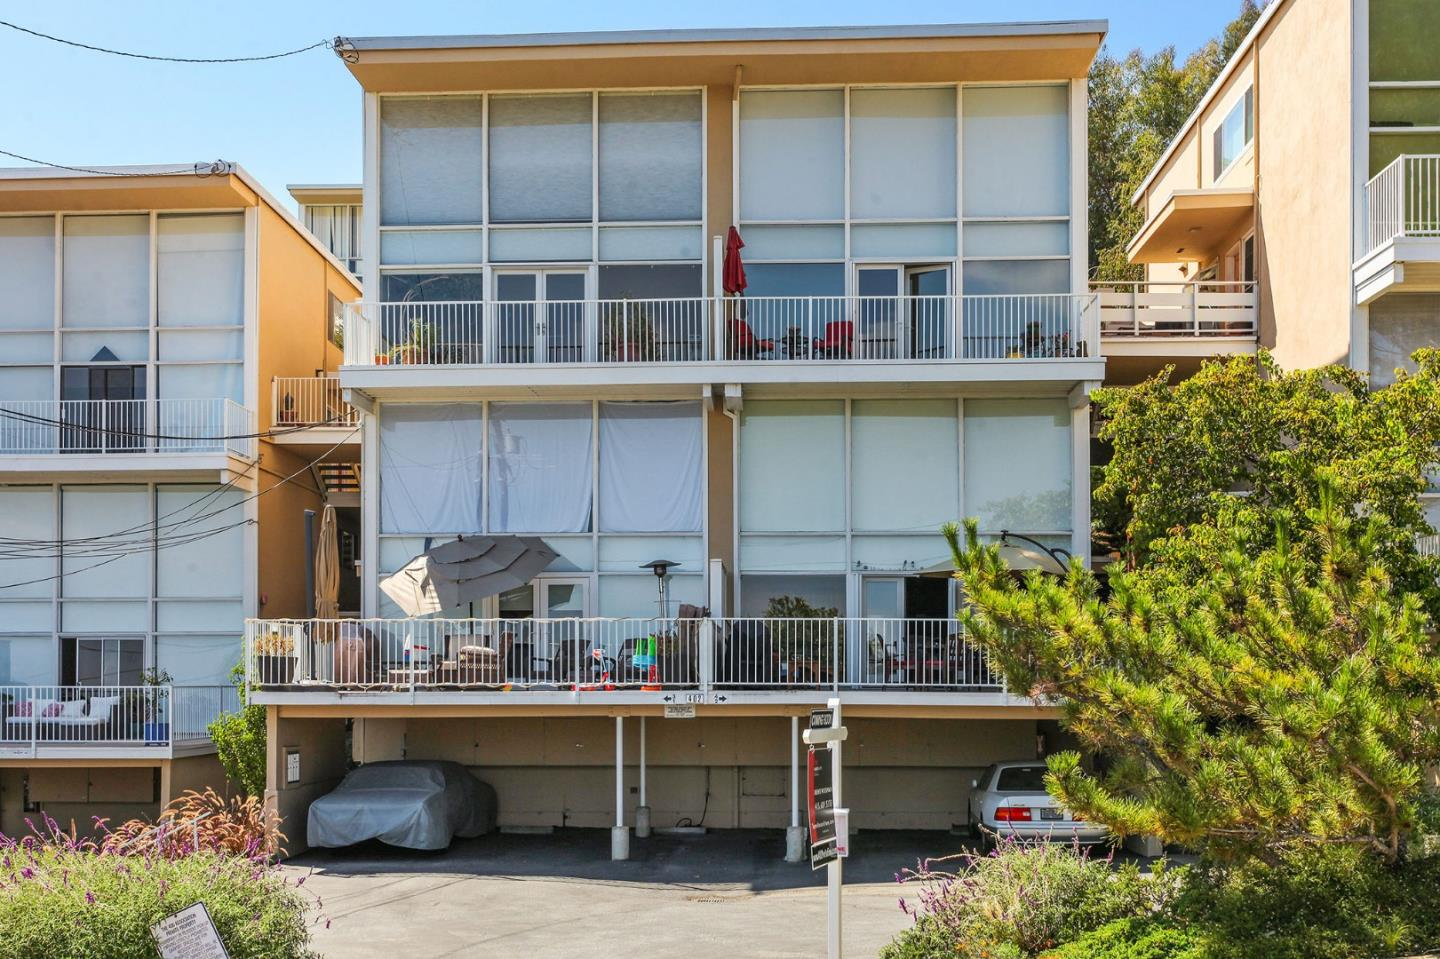 402 Portofino Drive Unit 4 San Carlos, CA 94070 - MLS #: ML81722043